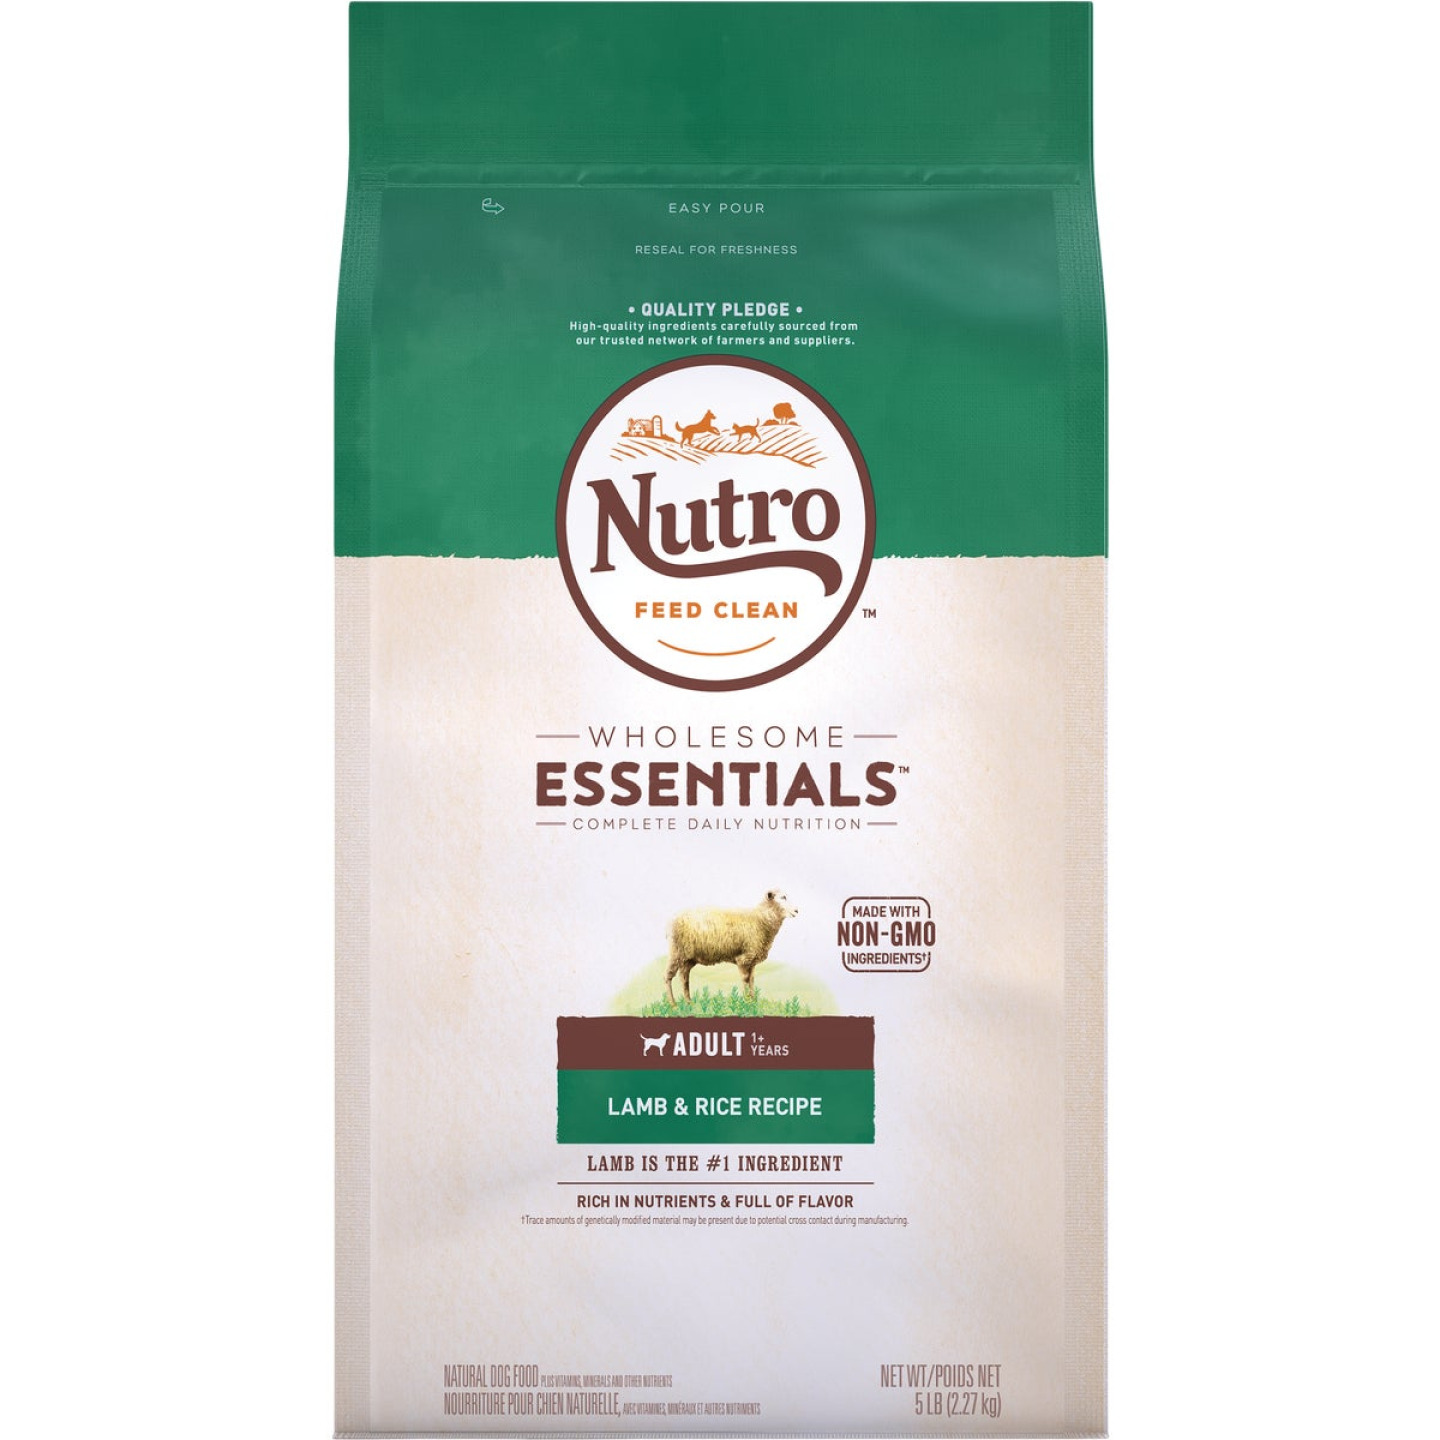 Nutro Wholesome Essentials 5 Lb. Lamb & Rice Adult Dry Dog Food Image 1